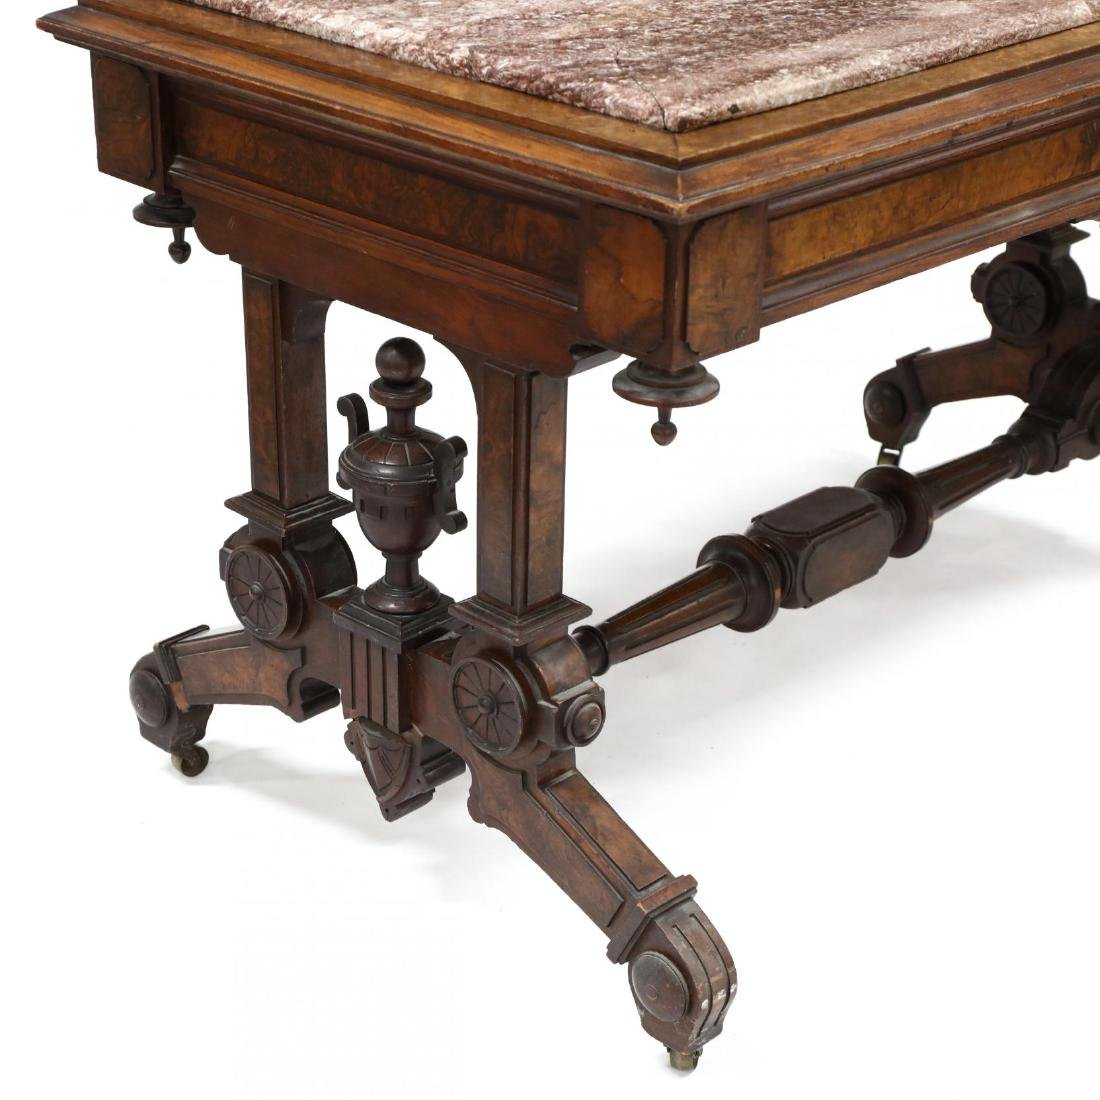 American Renaissance Revival Marble Top Library Table - 4